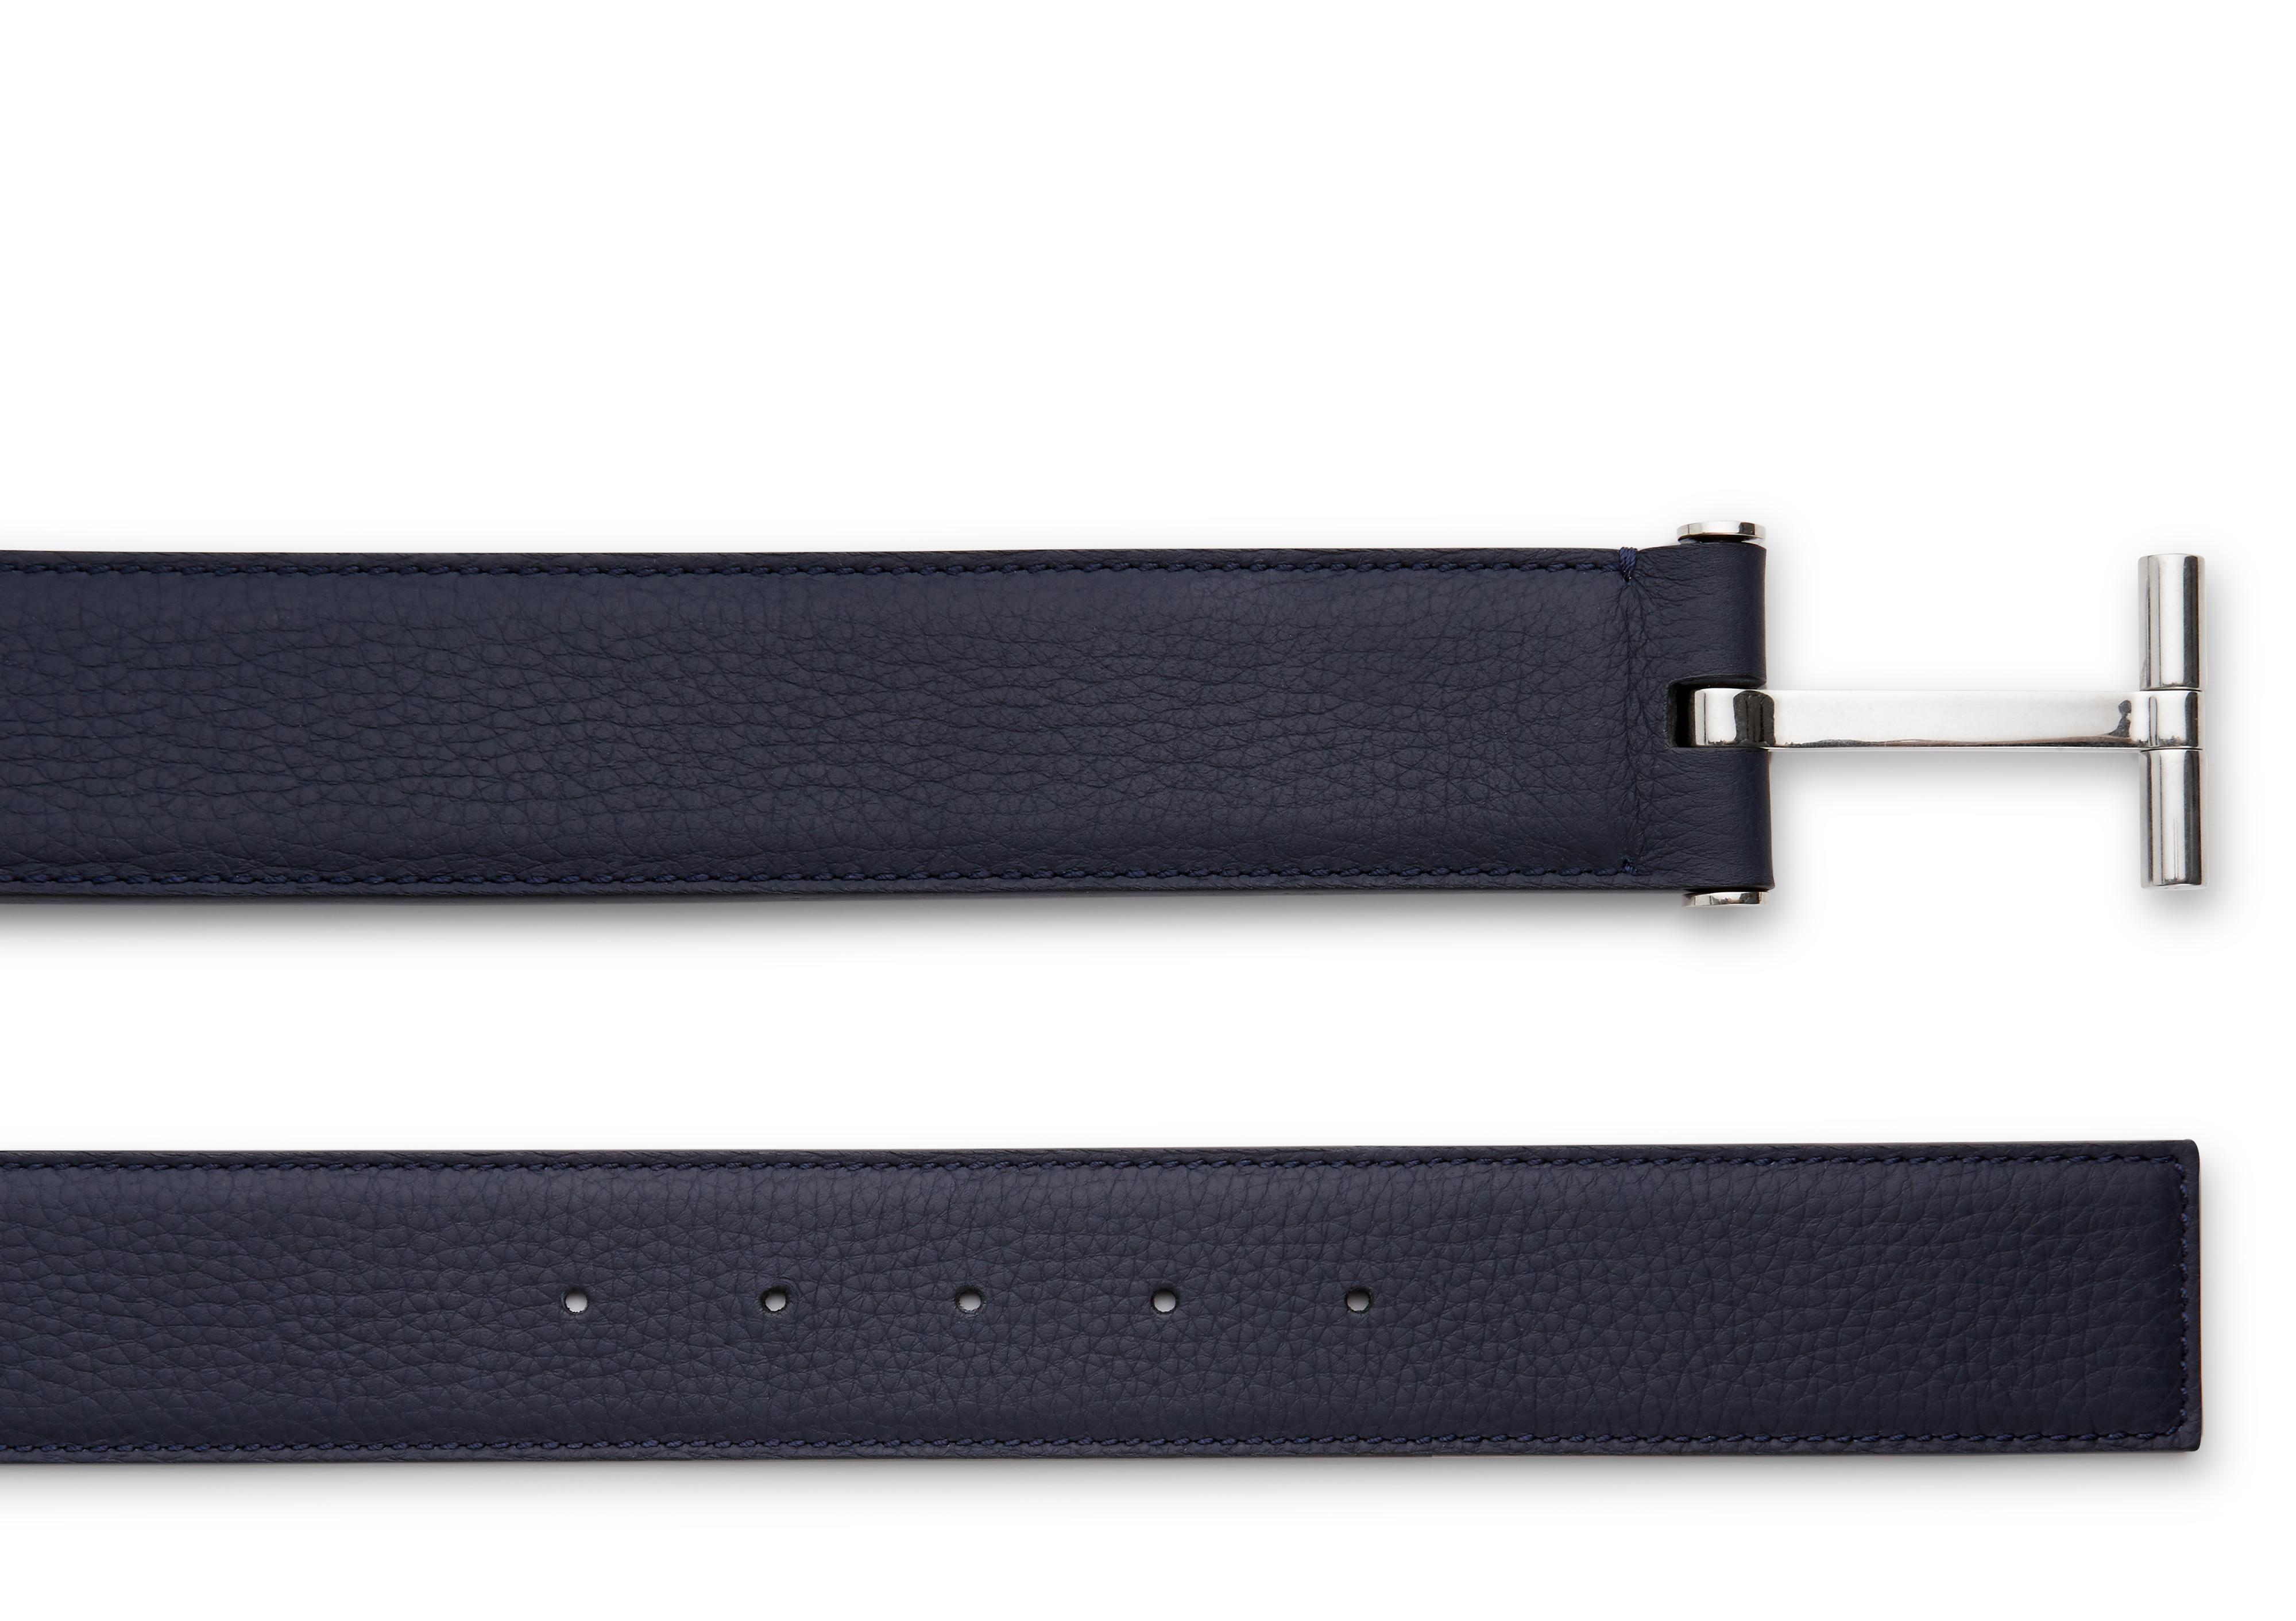 T BUCKLE BELT B thumbnail